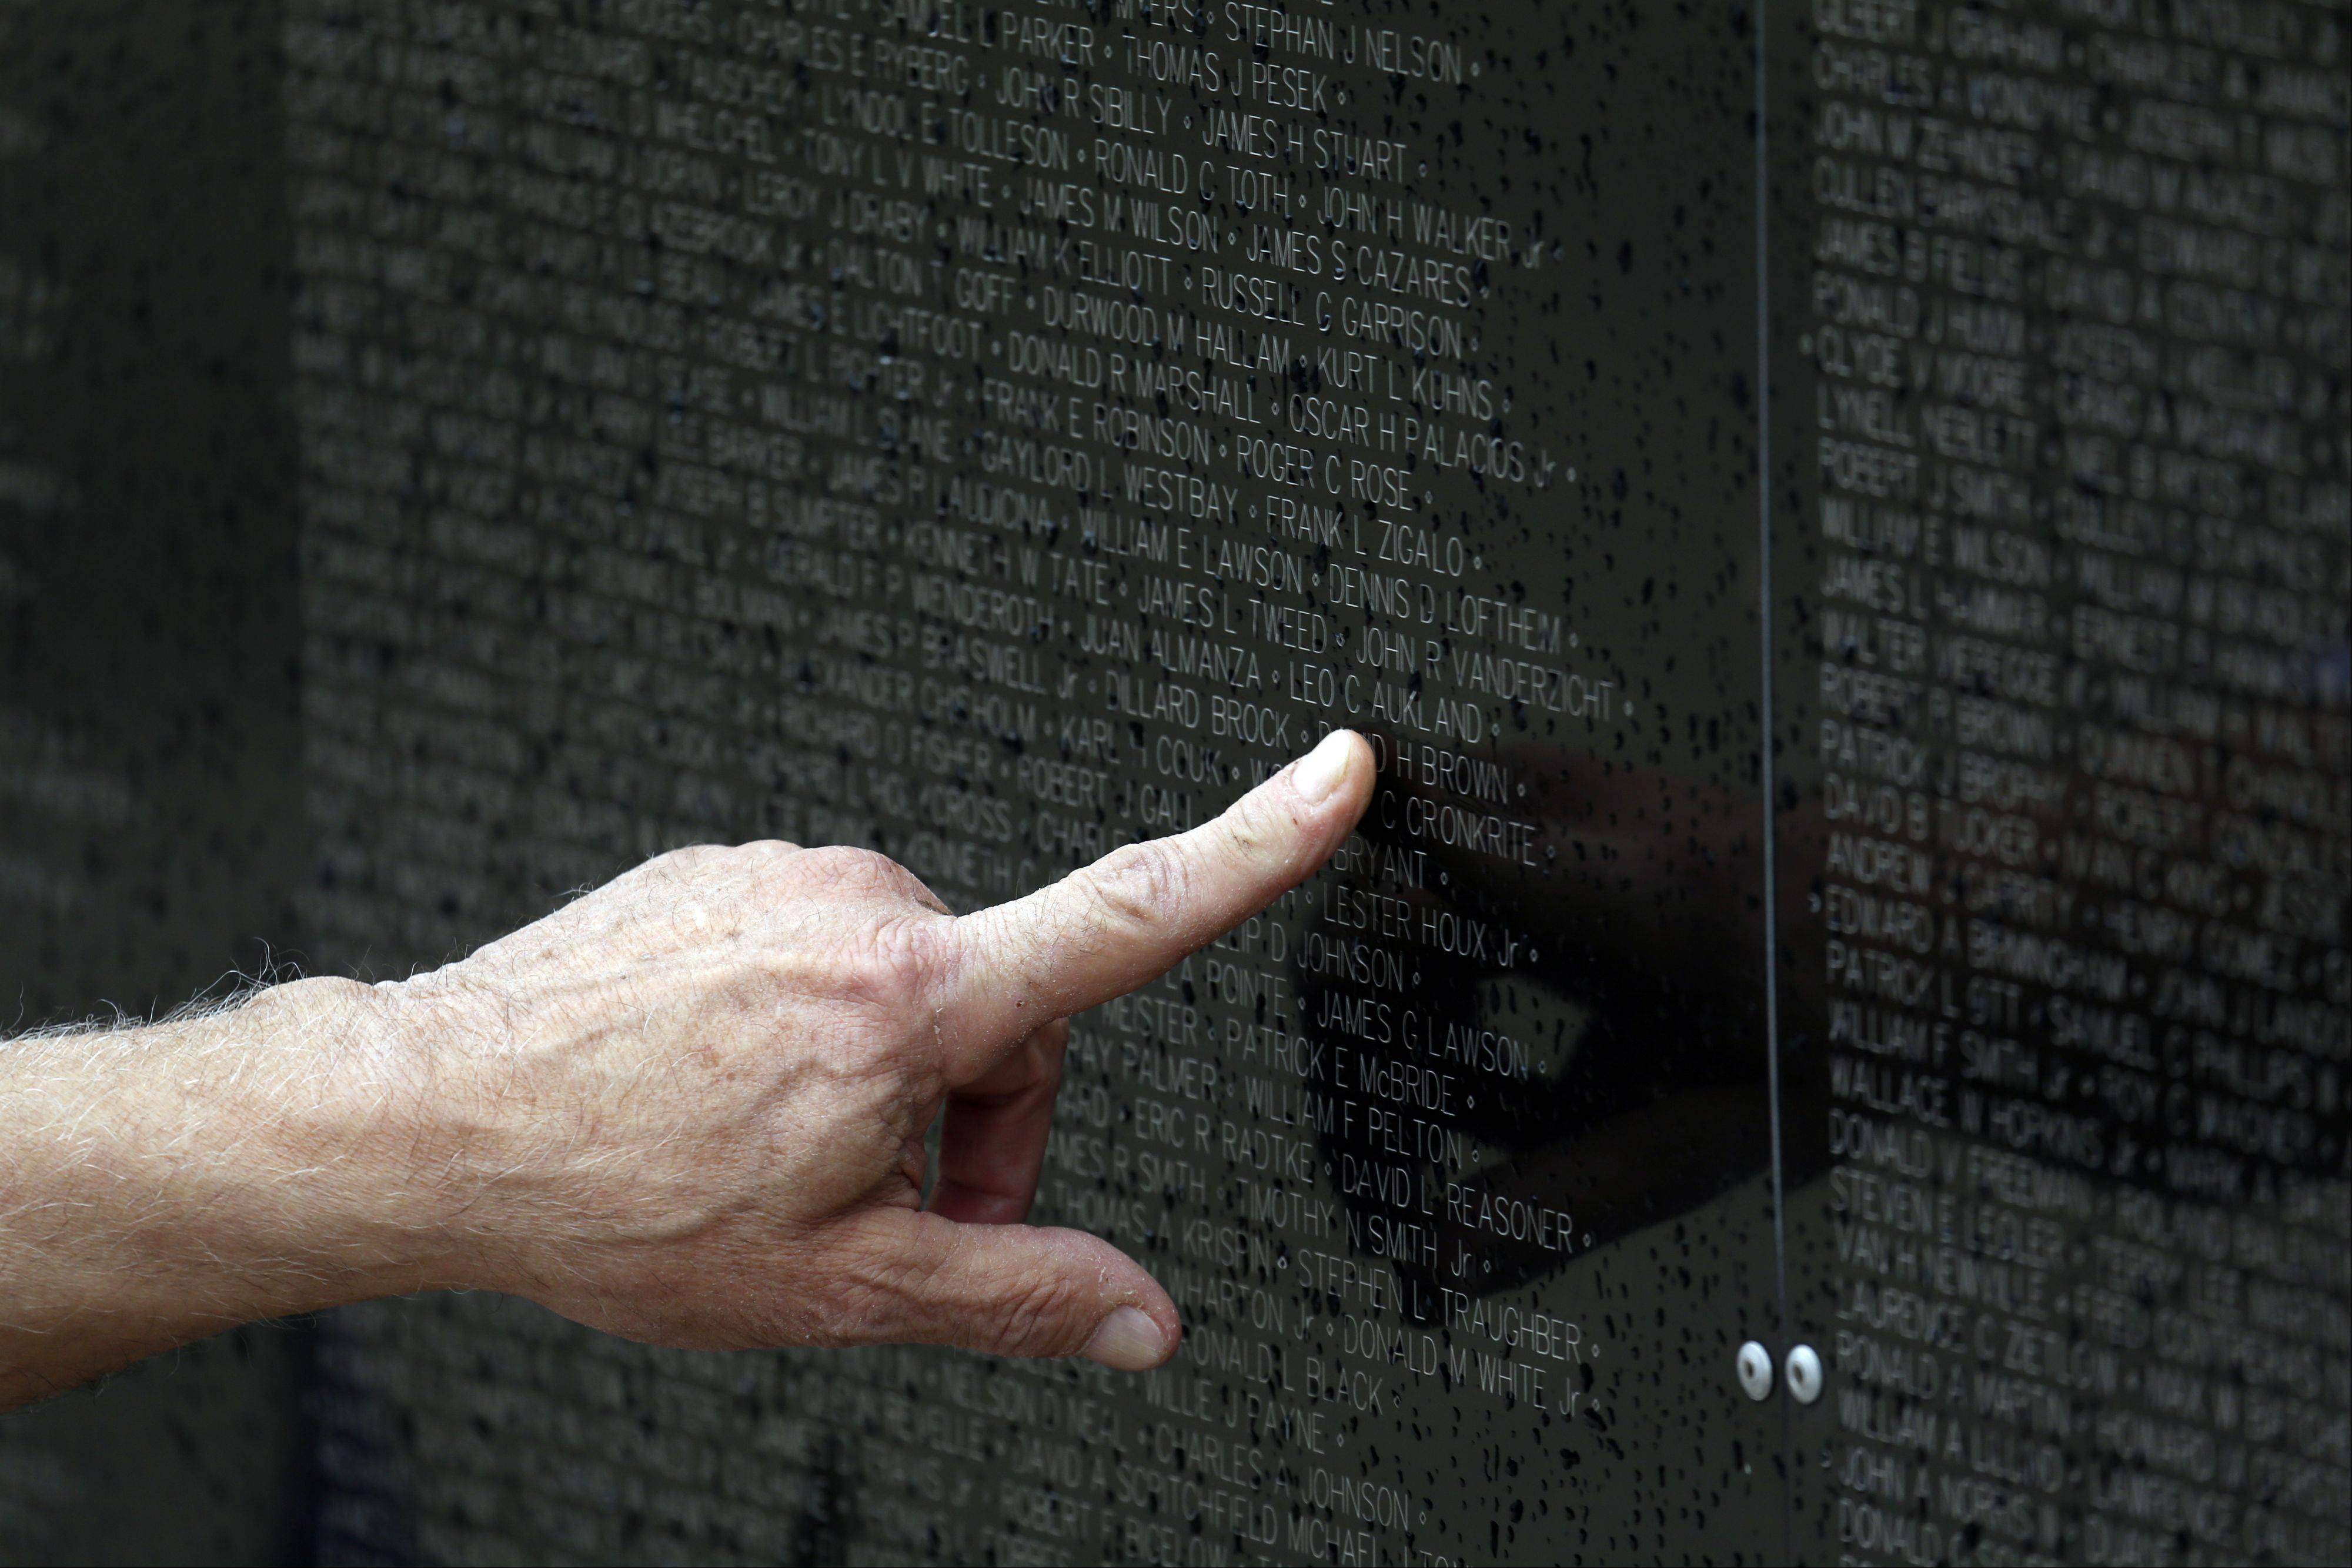 More than 300,000 visitors are expected to visit The Moving Wall during its four-day stay in Aurora that begins Thursday morning. The memorial will remain in Aurora through Veterans Day.